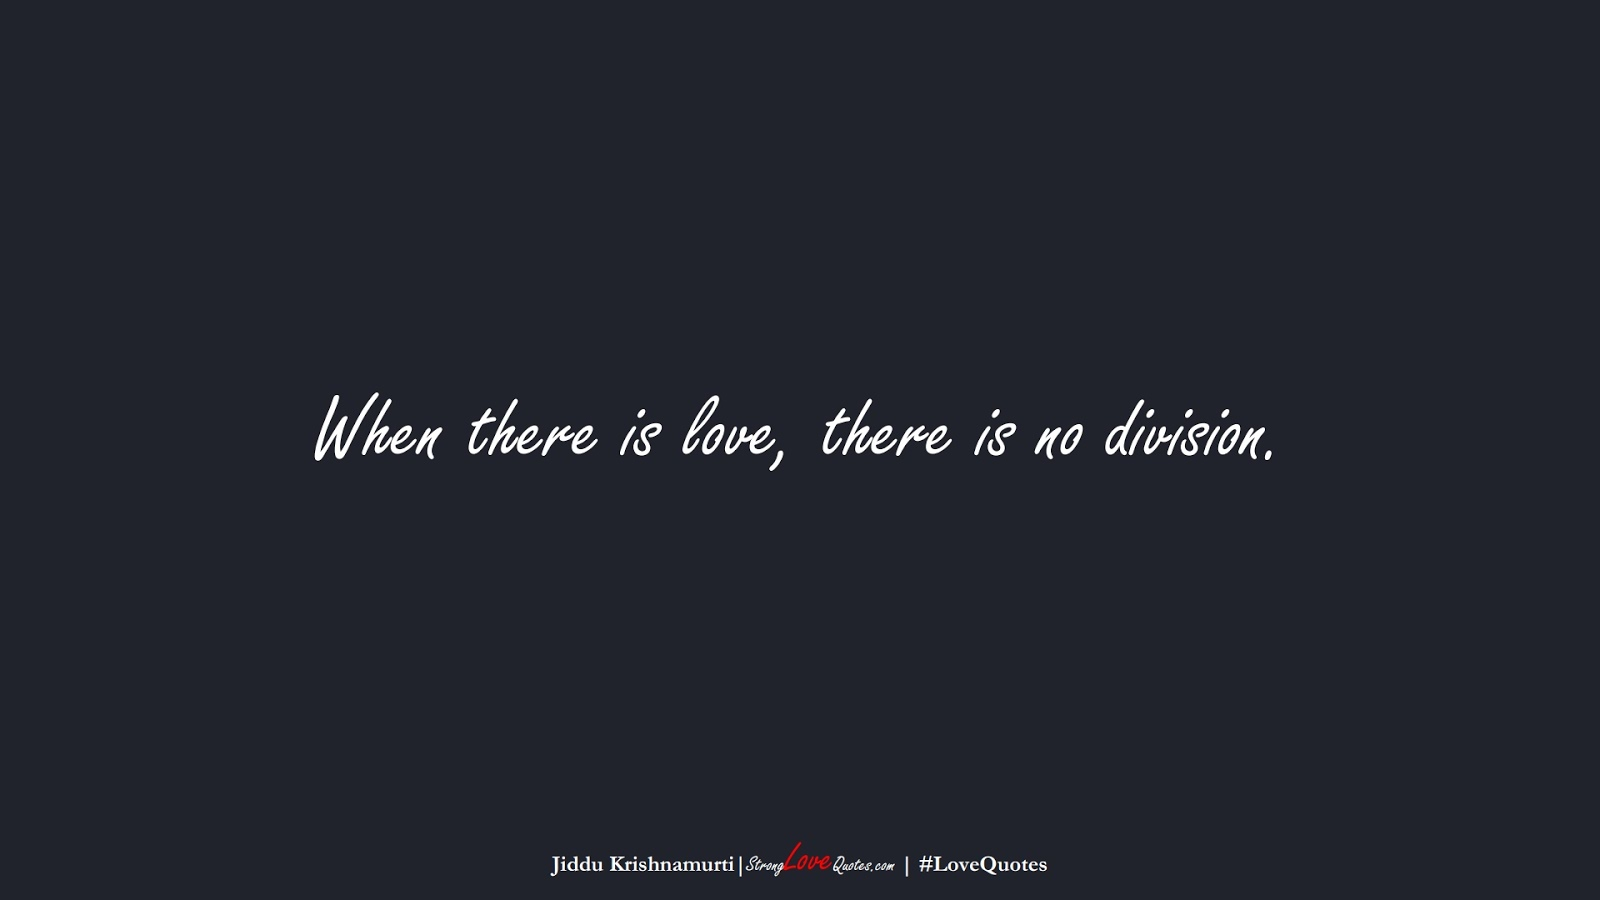 When there is love, there is no division. (Jiddu Krishnamurti);  #LoveQuotes